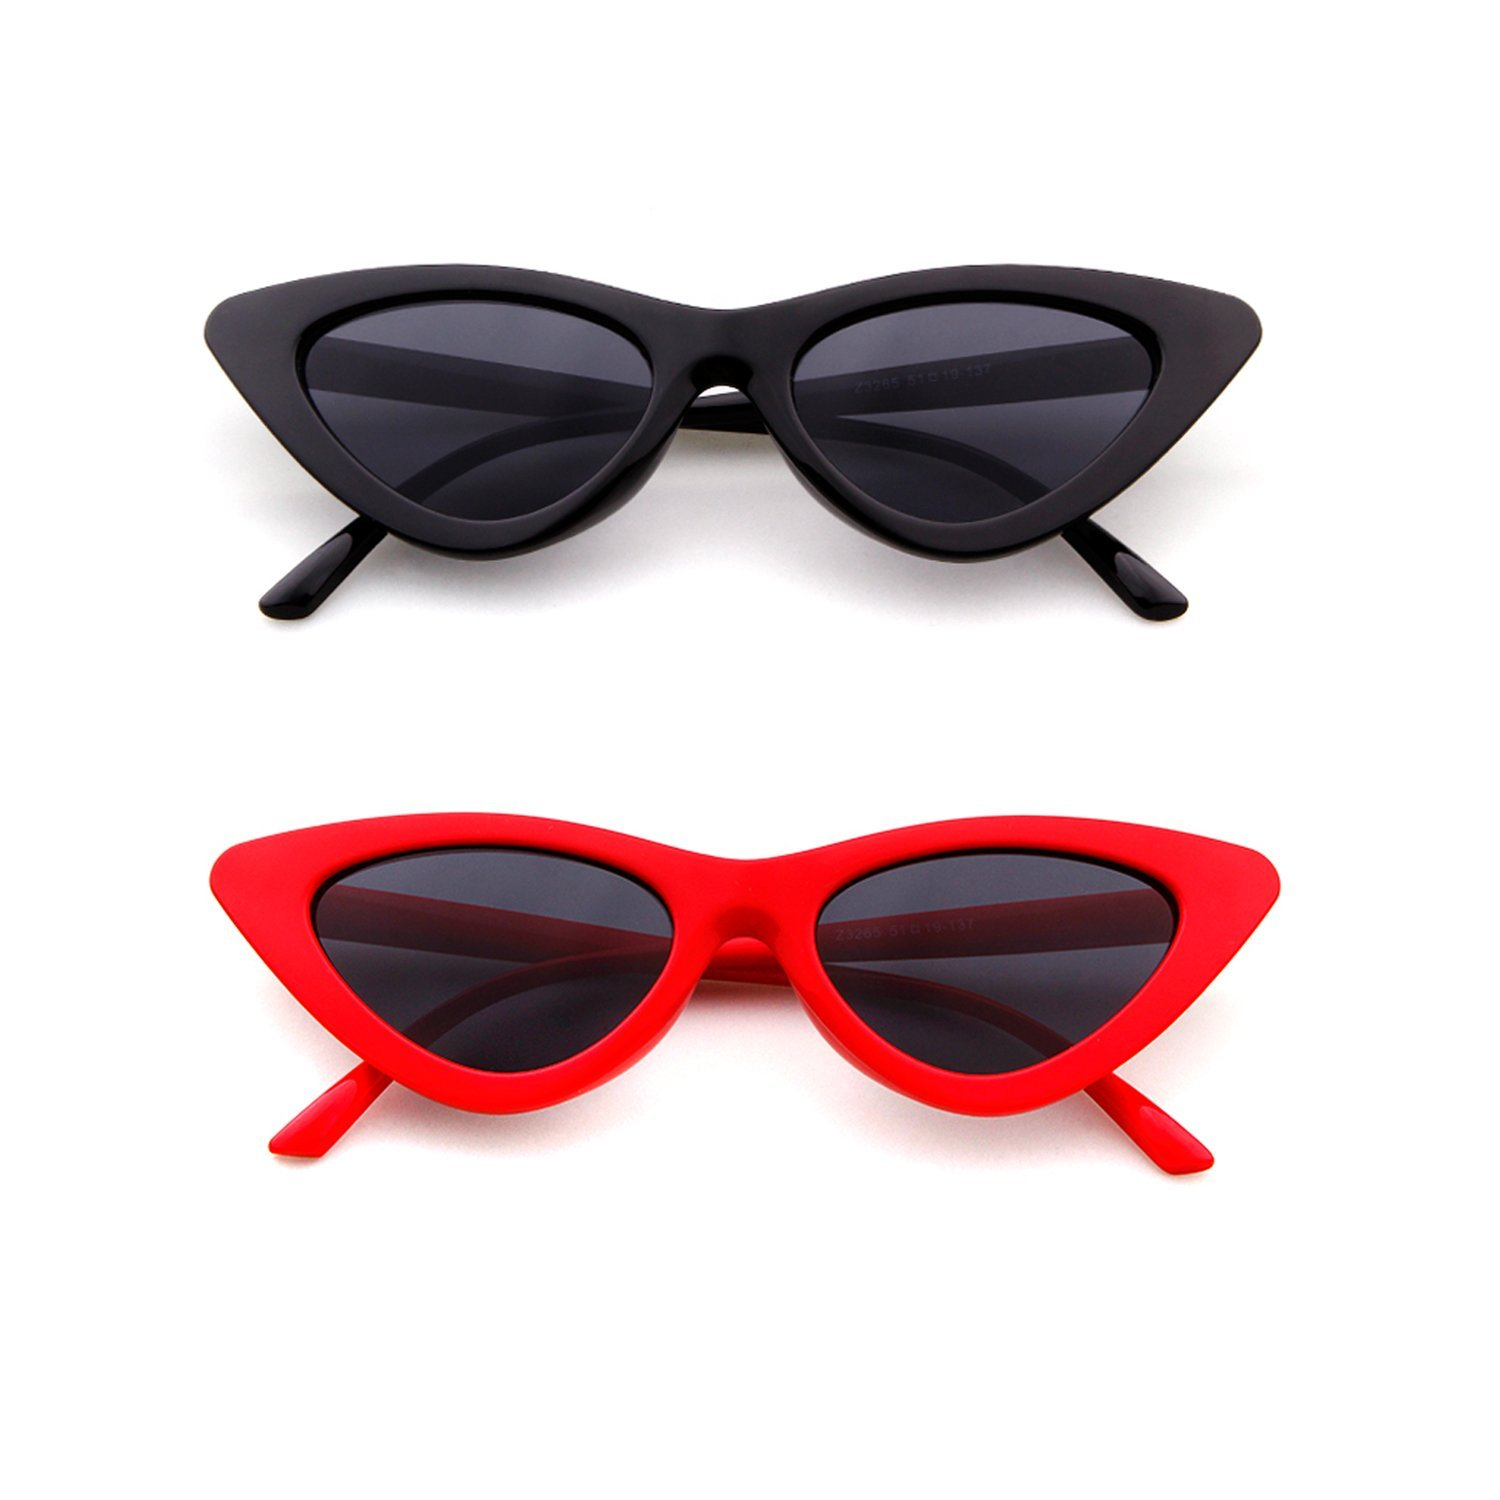 80529a903c ☀️FASHIONABLE DESIGN▻Retro 1990 s cat eye sunglasses featuring an  exaggerated cat eye silhouette with a slim design. Complete with neutral  colored ...